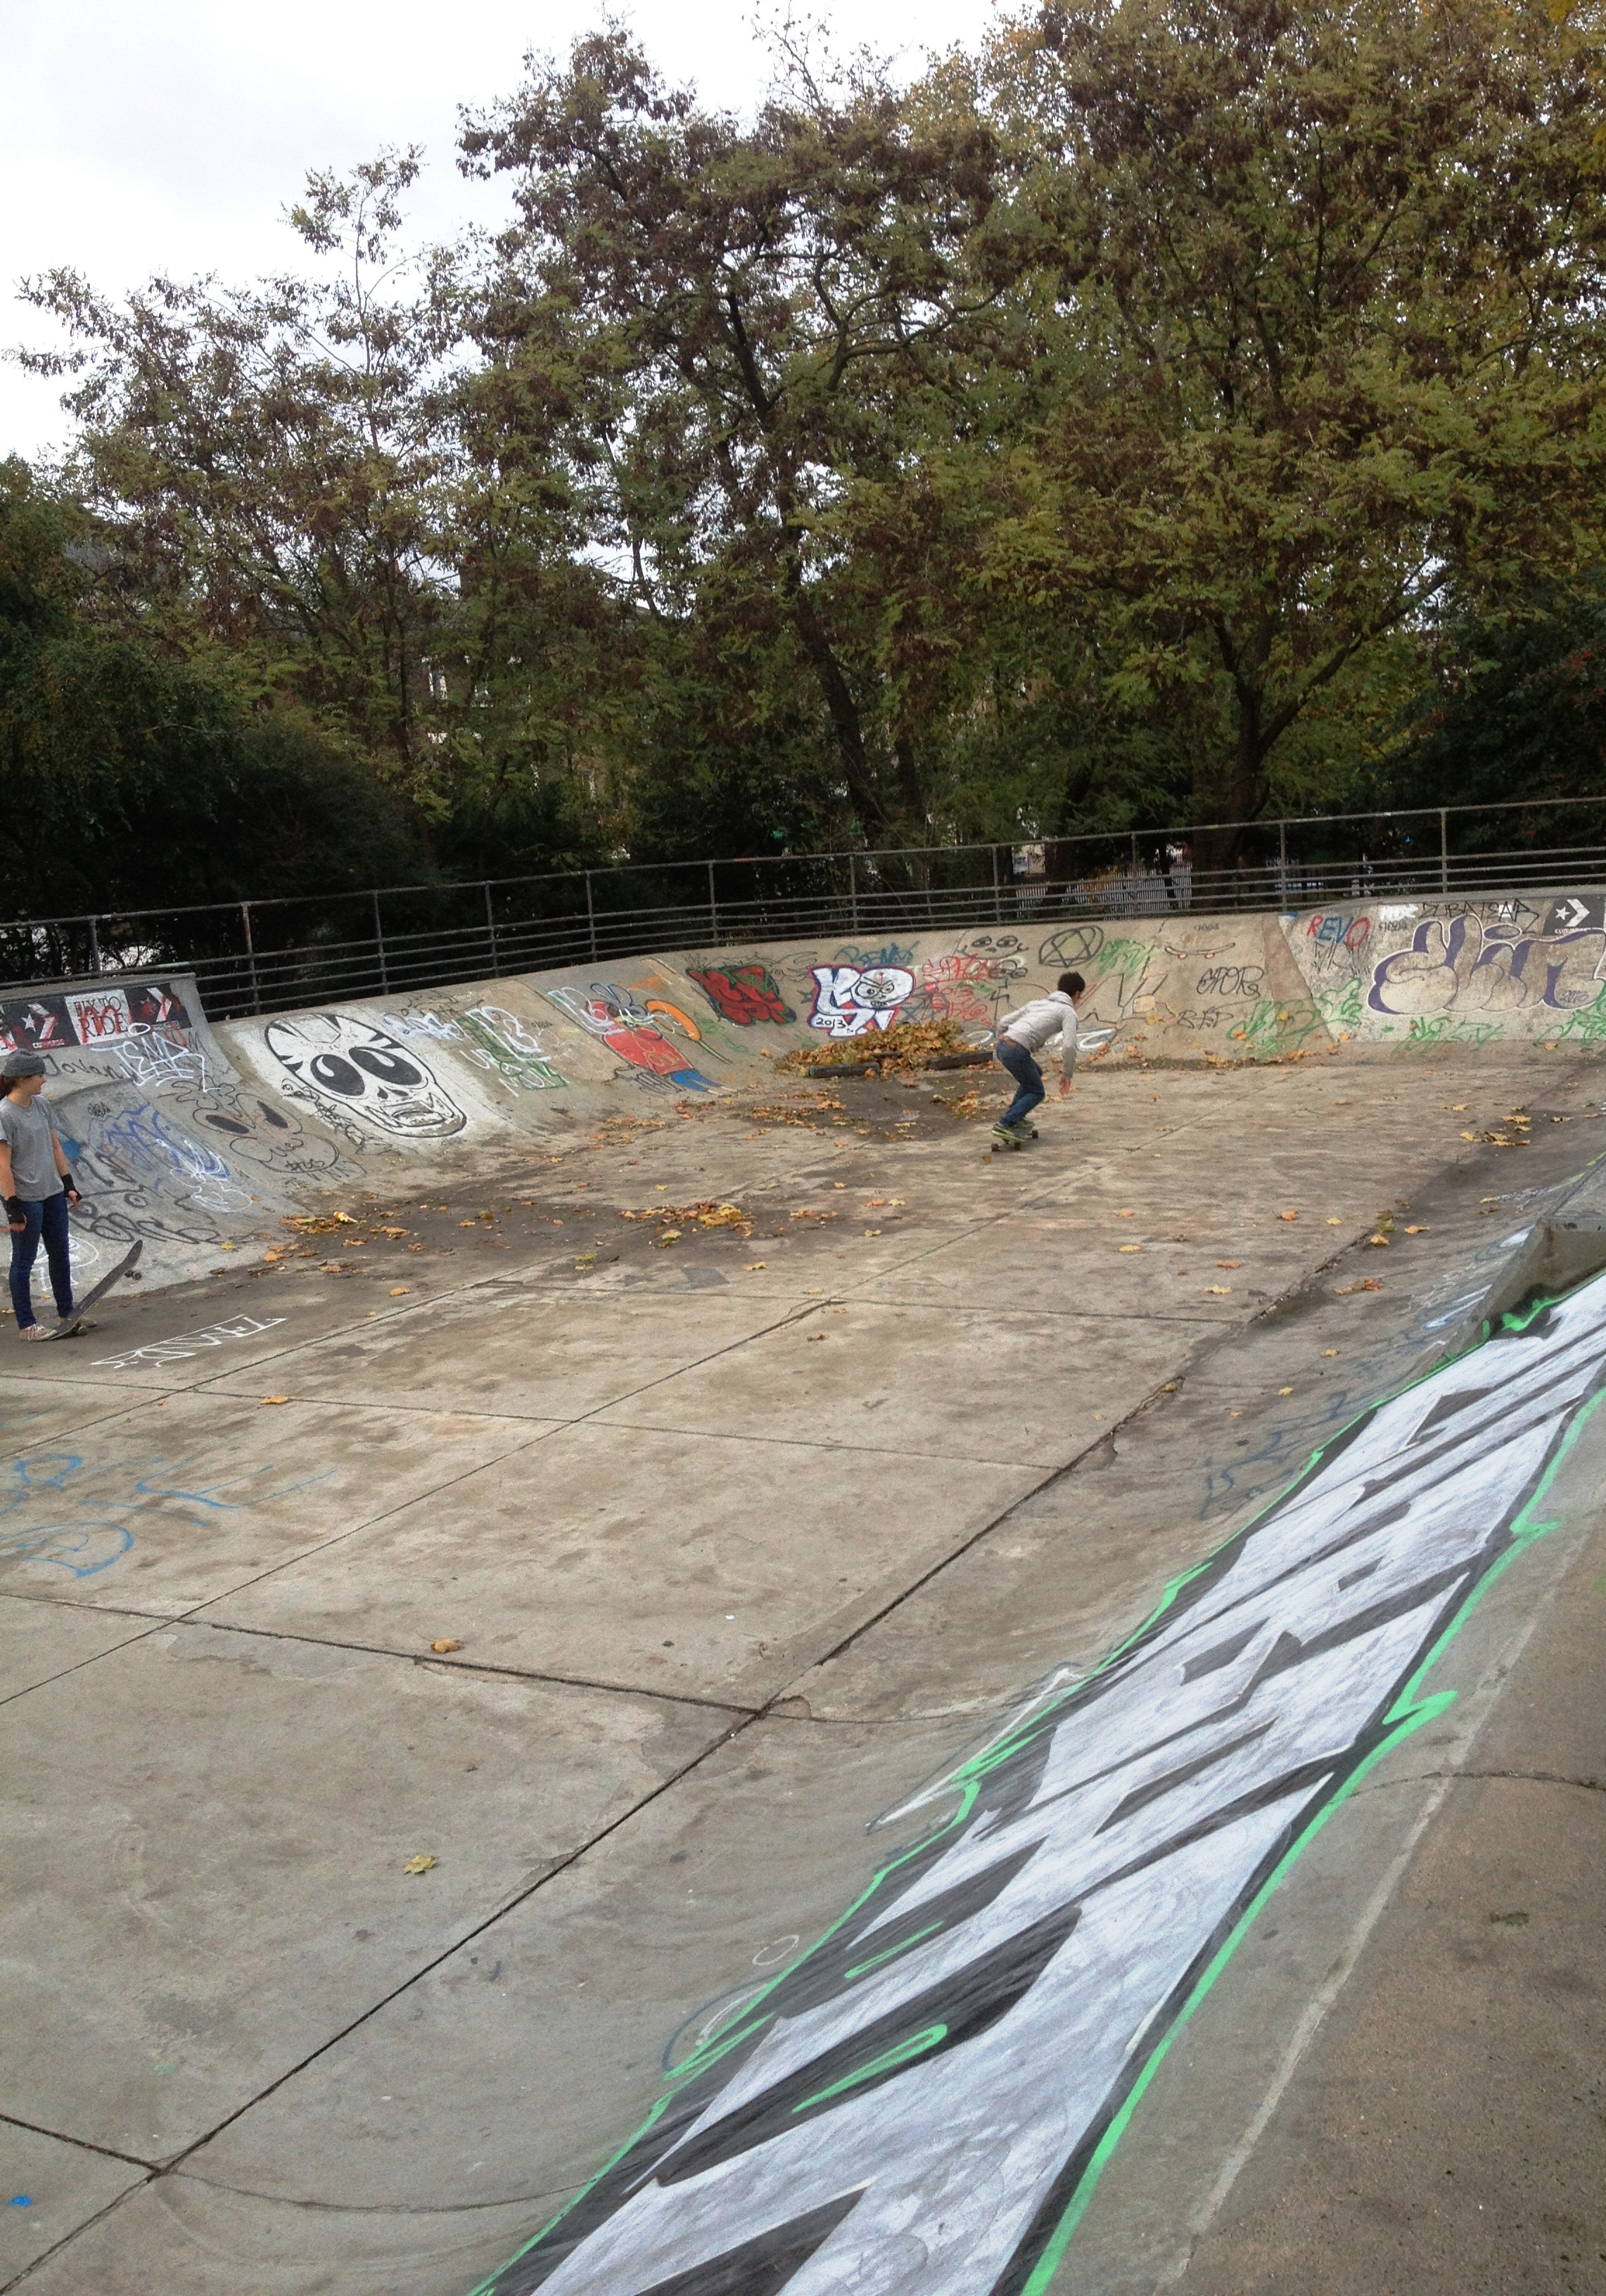 Kennington Park Skate Bowl - kenningtonrunoff.com